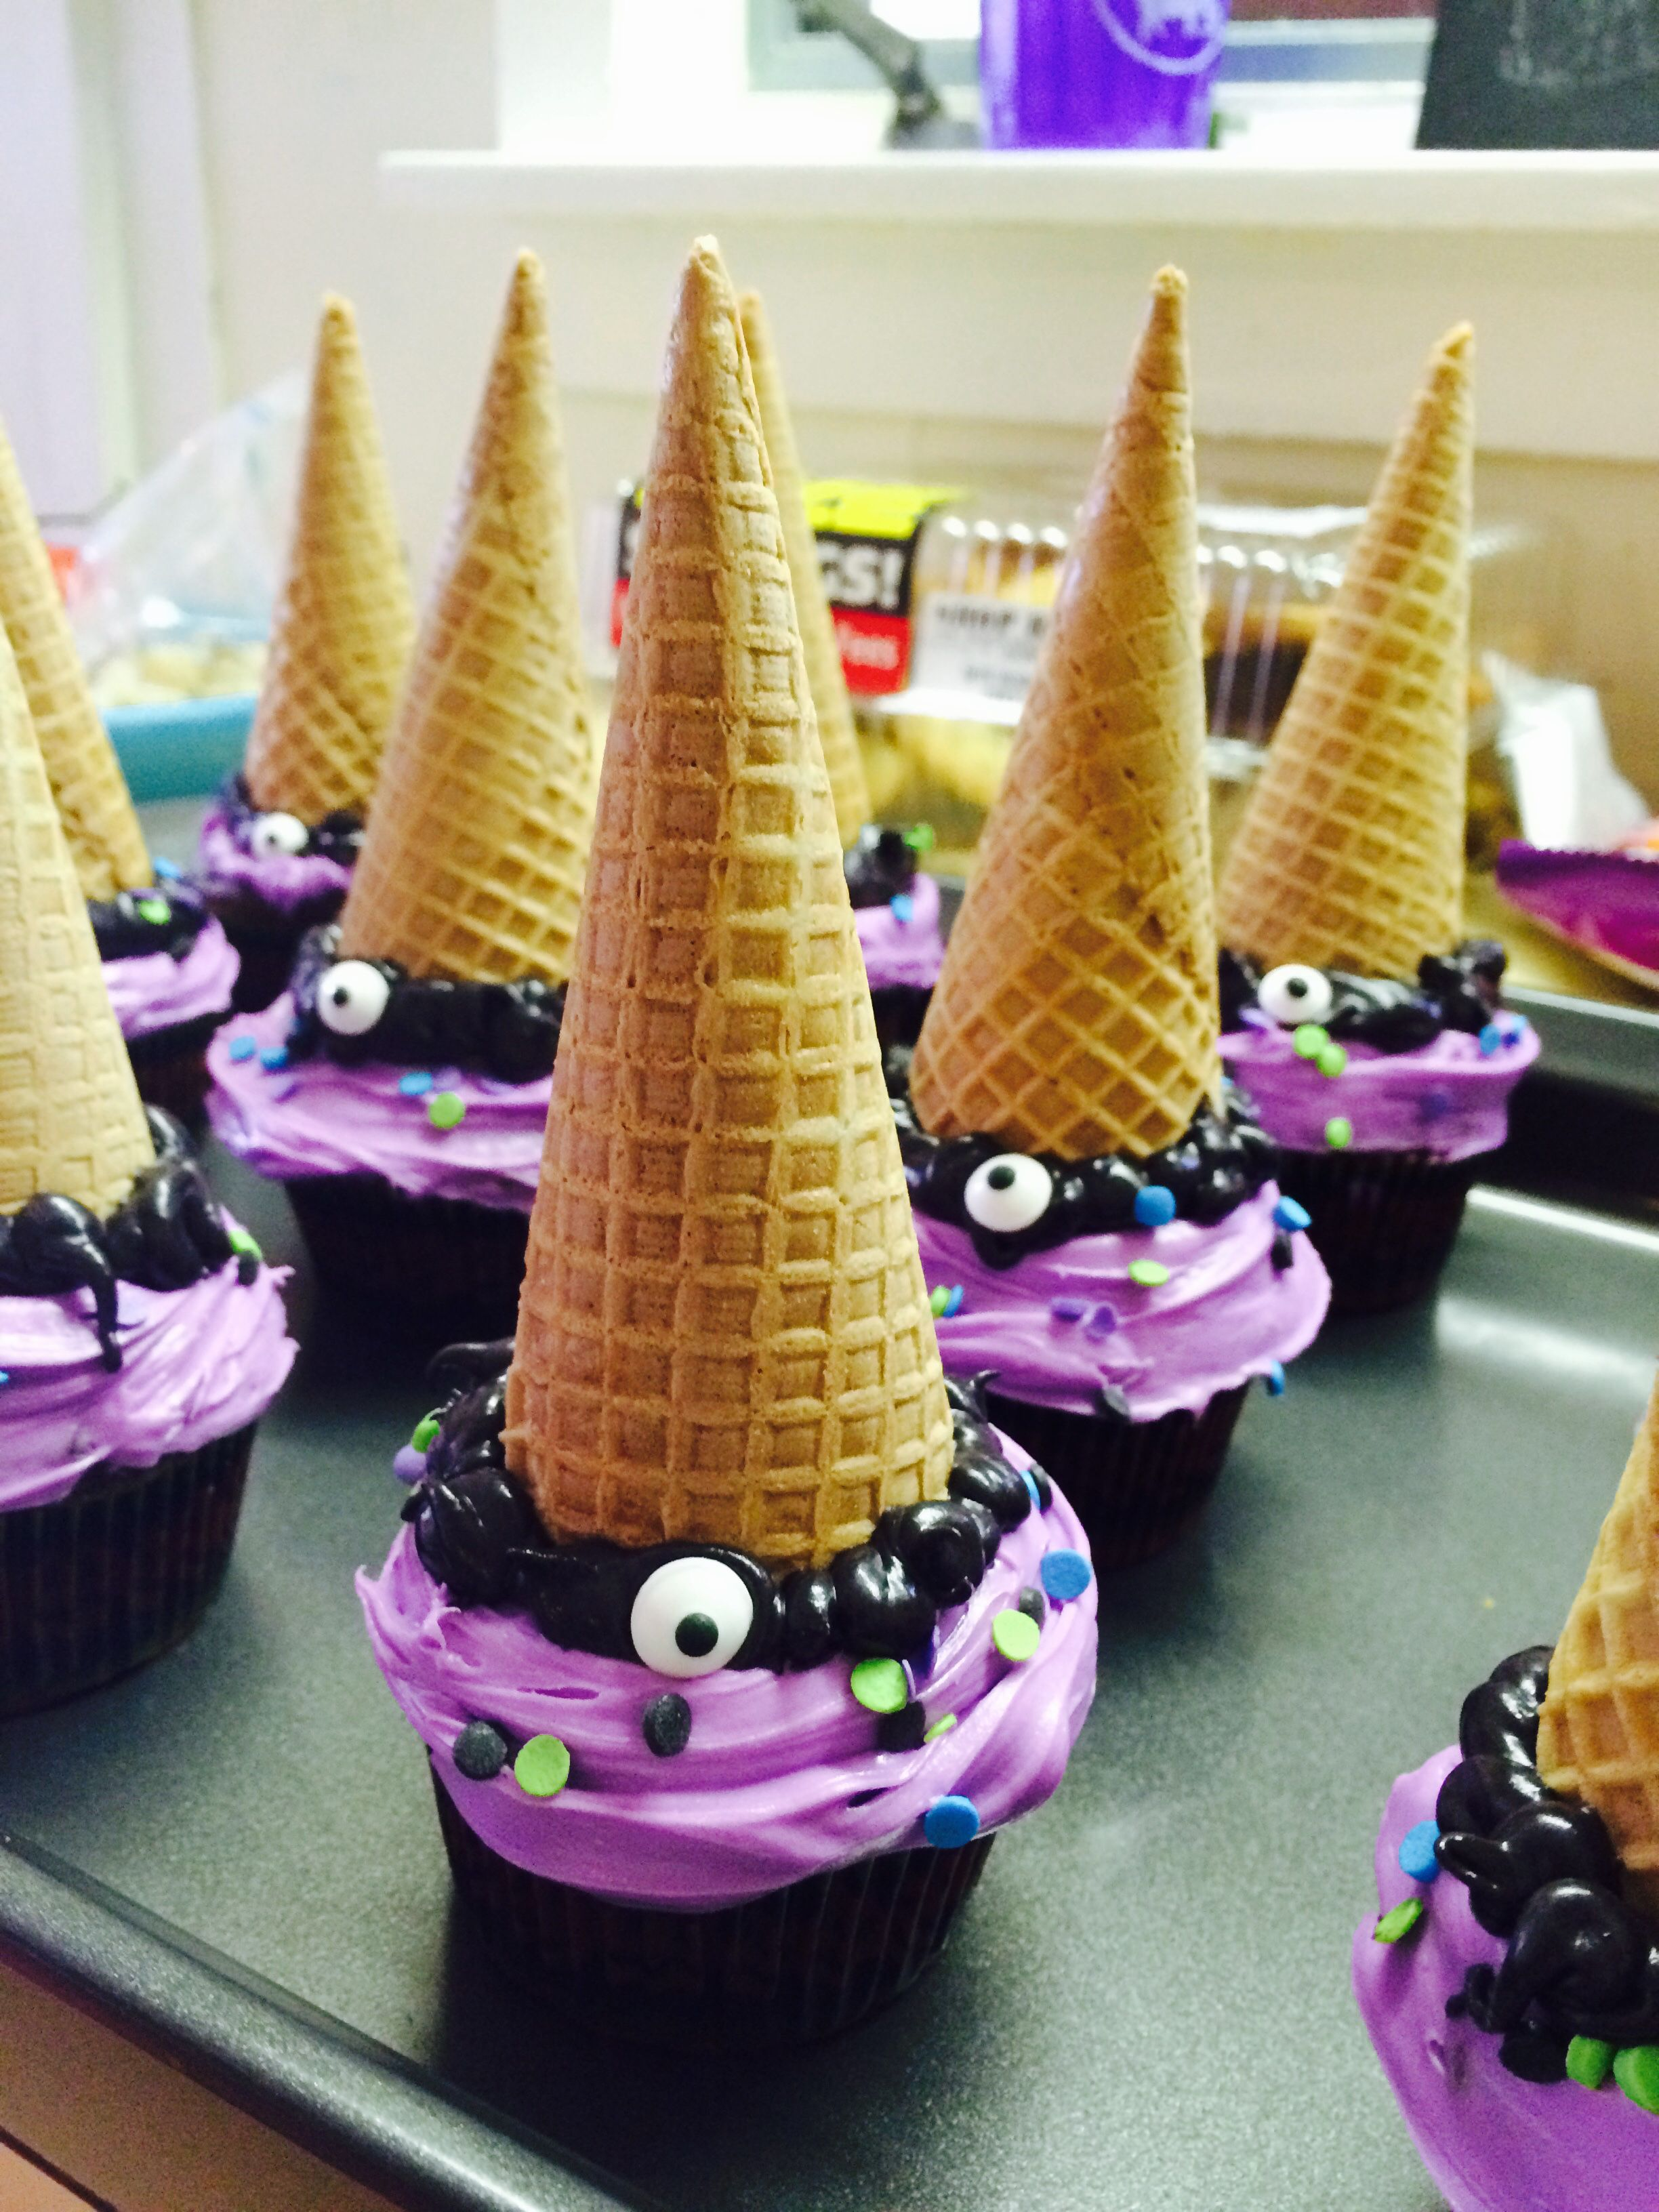 One eyed one horned flying purple people eater cupcakes!